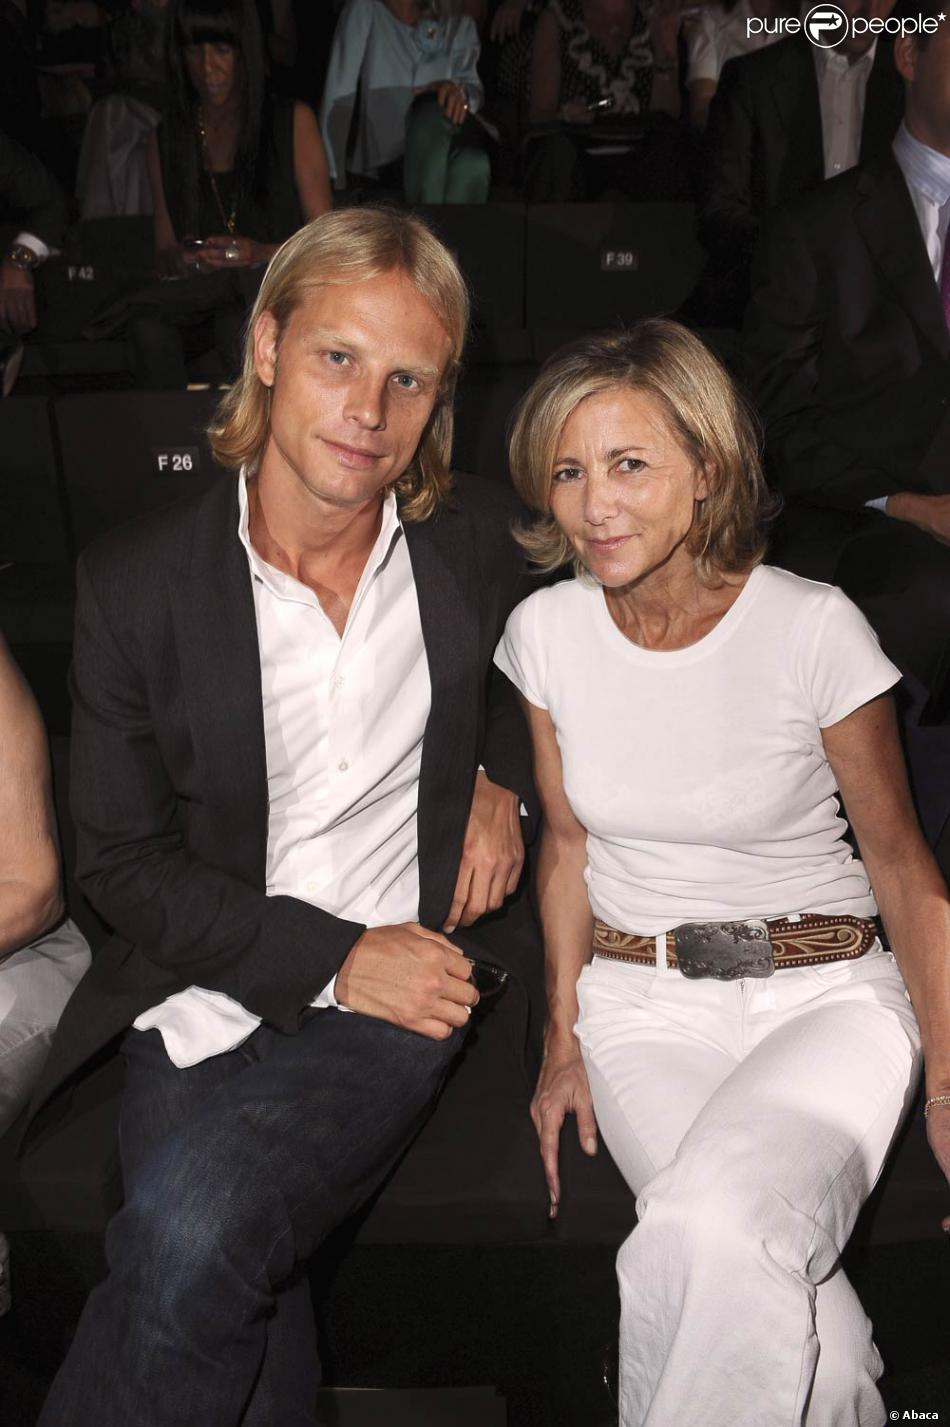 claire chazal et arnaud lemaire purepeople. Black Bedroom Furniture Sets. Home Design Ideas